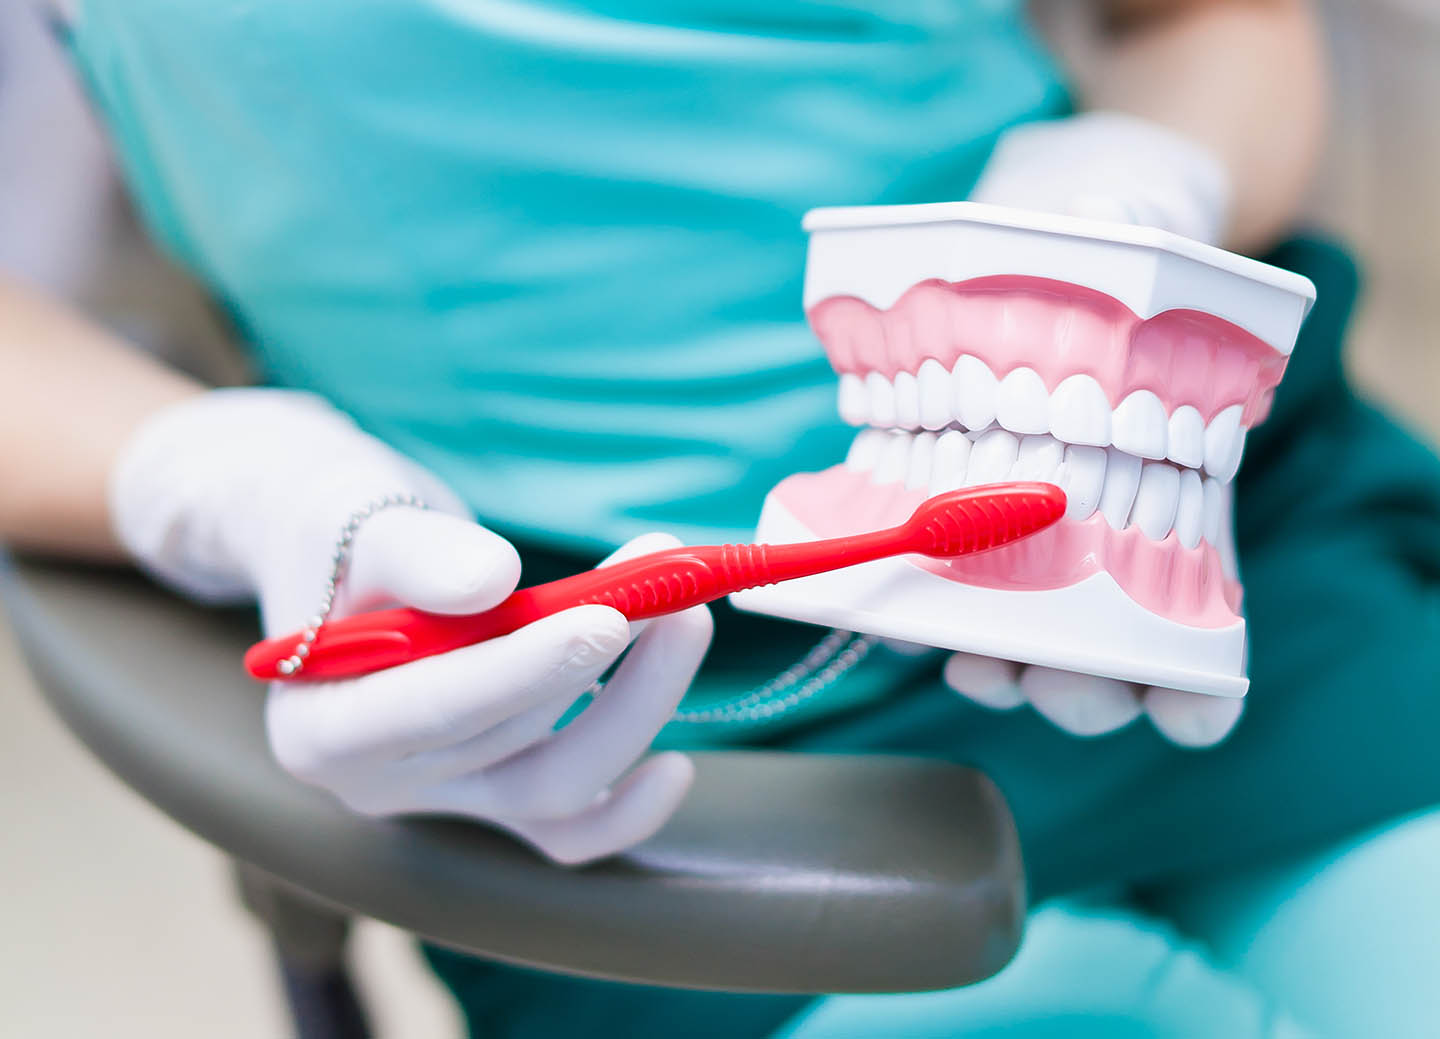 Dentist brushing a model of tooth structure